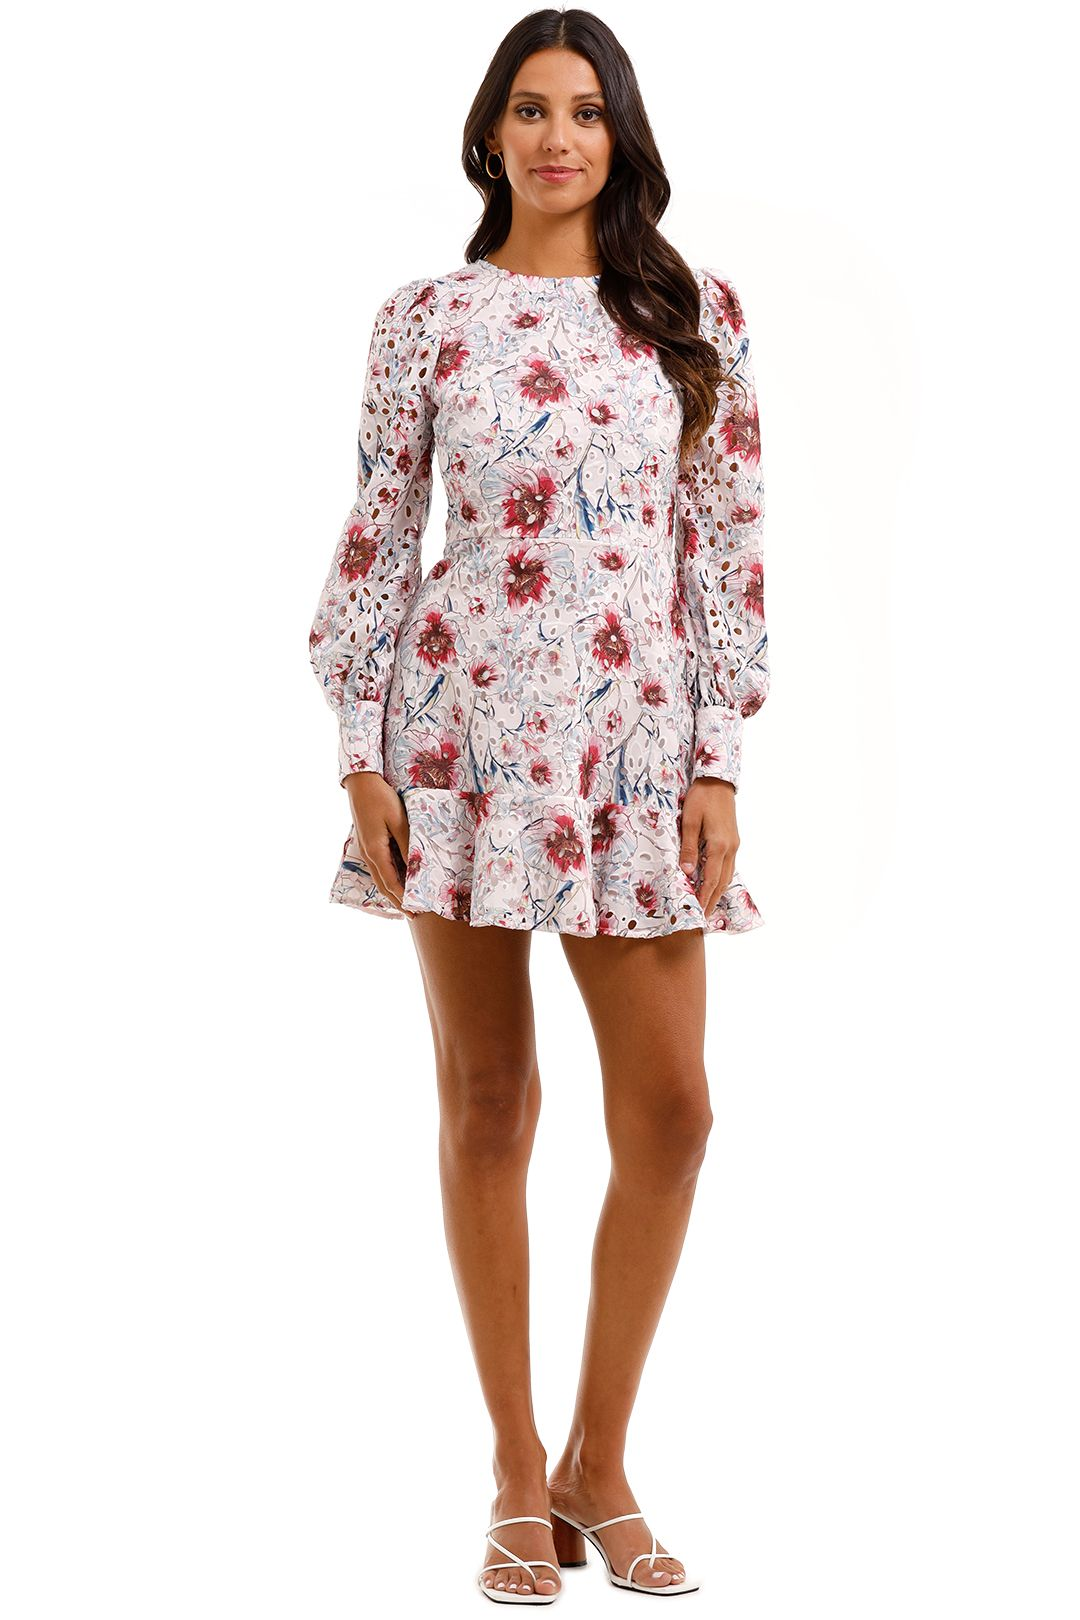 Talulah Bonita Long Sleeve Mini Dress Casablanca Print Front Lace